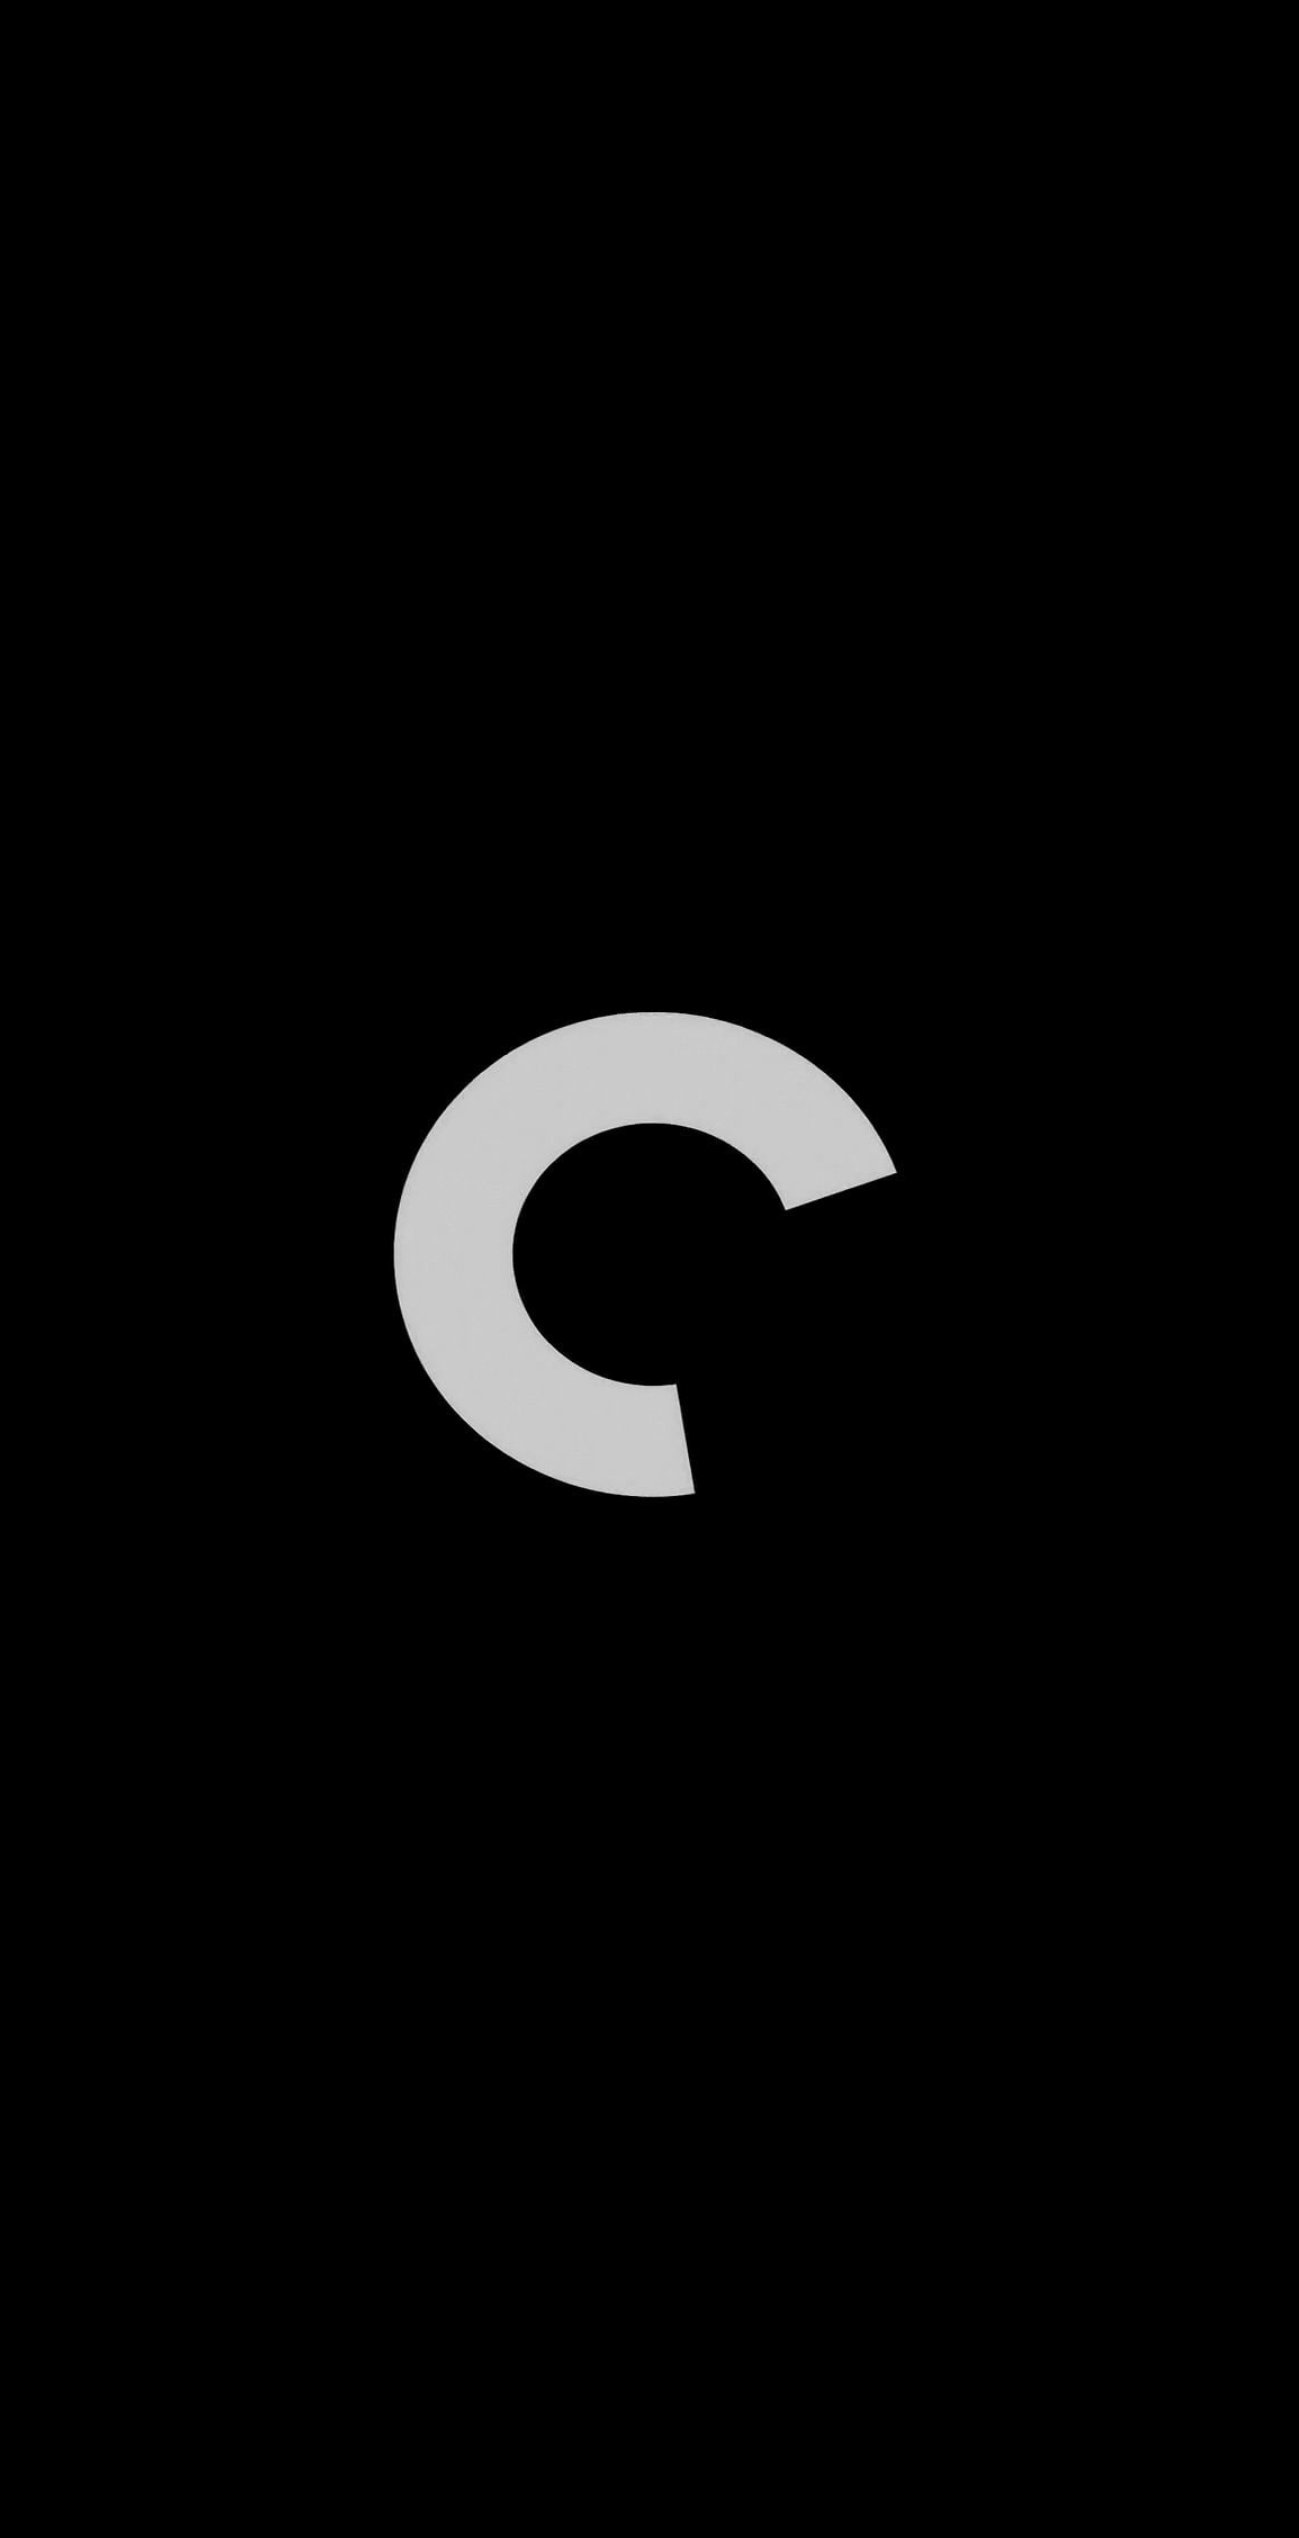 I made a Criterion logo phone wallpaper for you guys and.